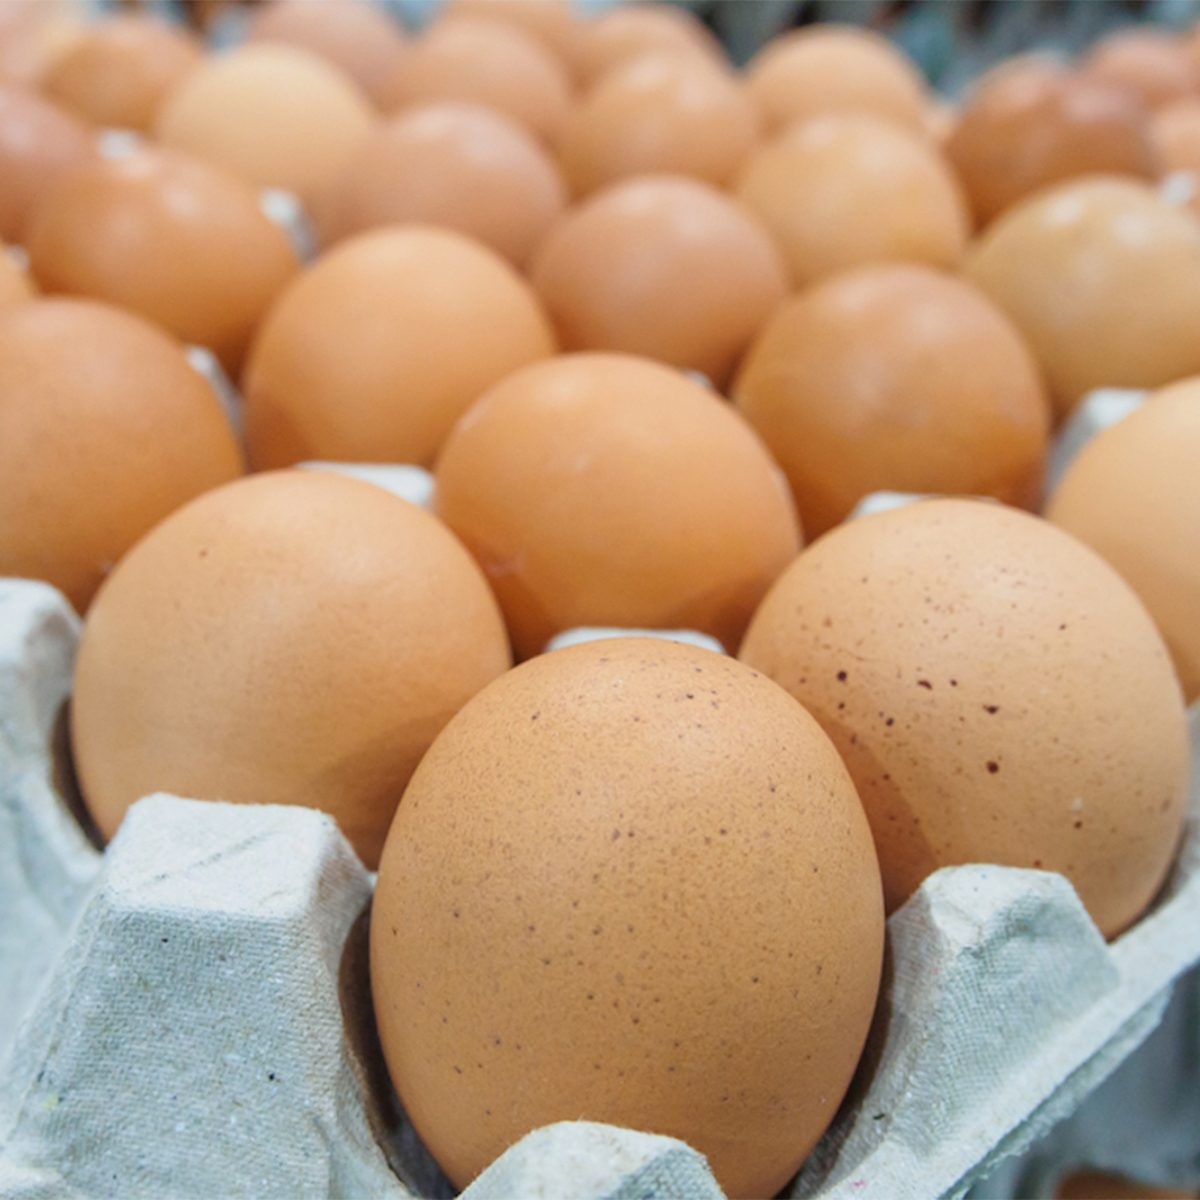 large carton of eggs